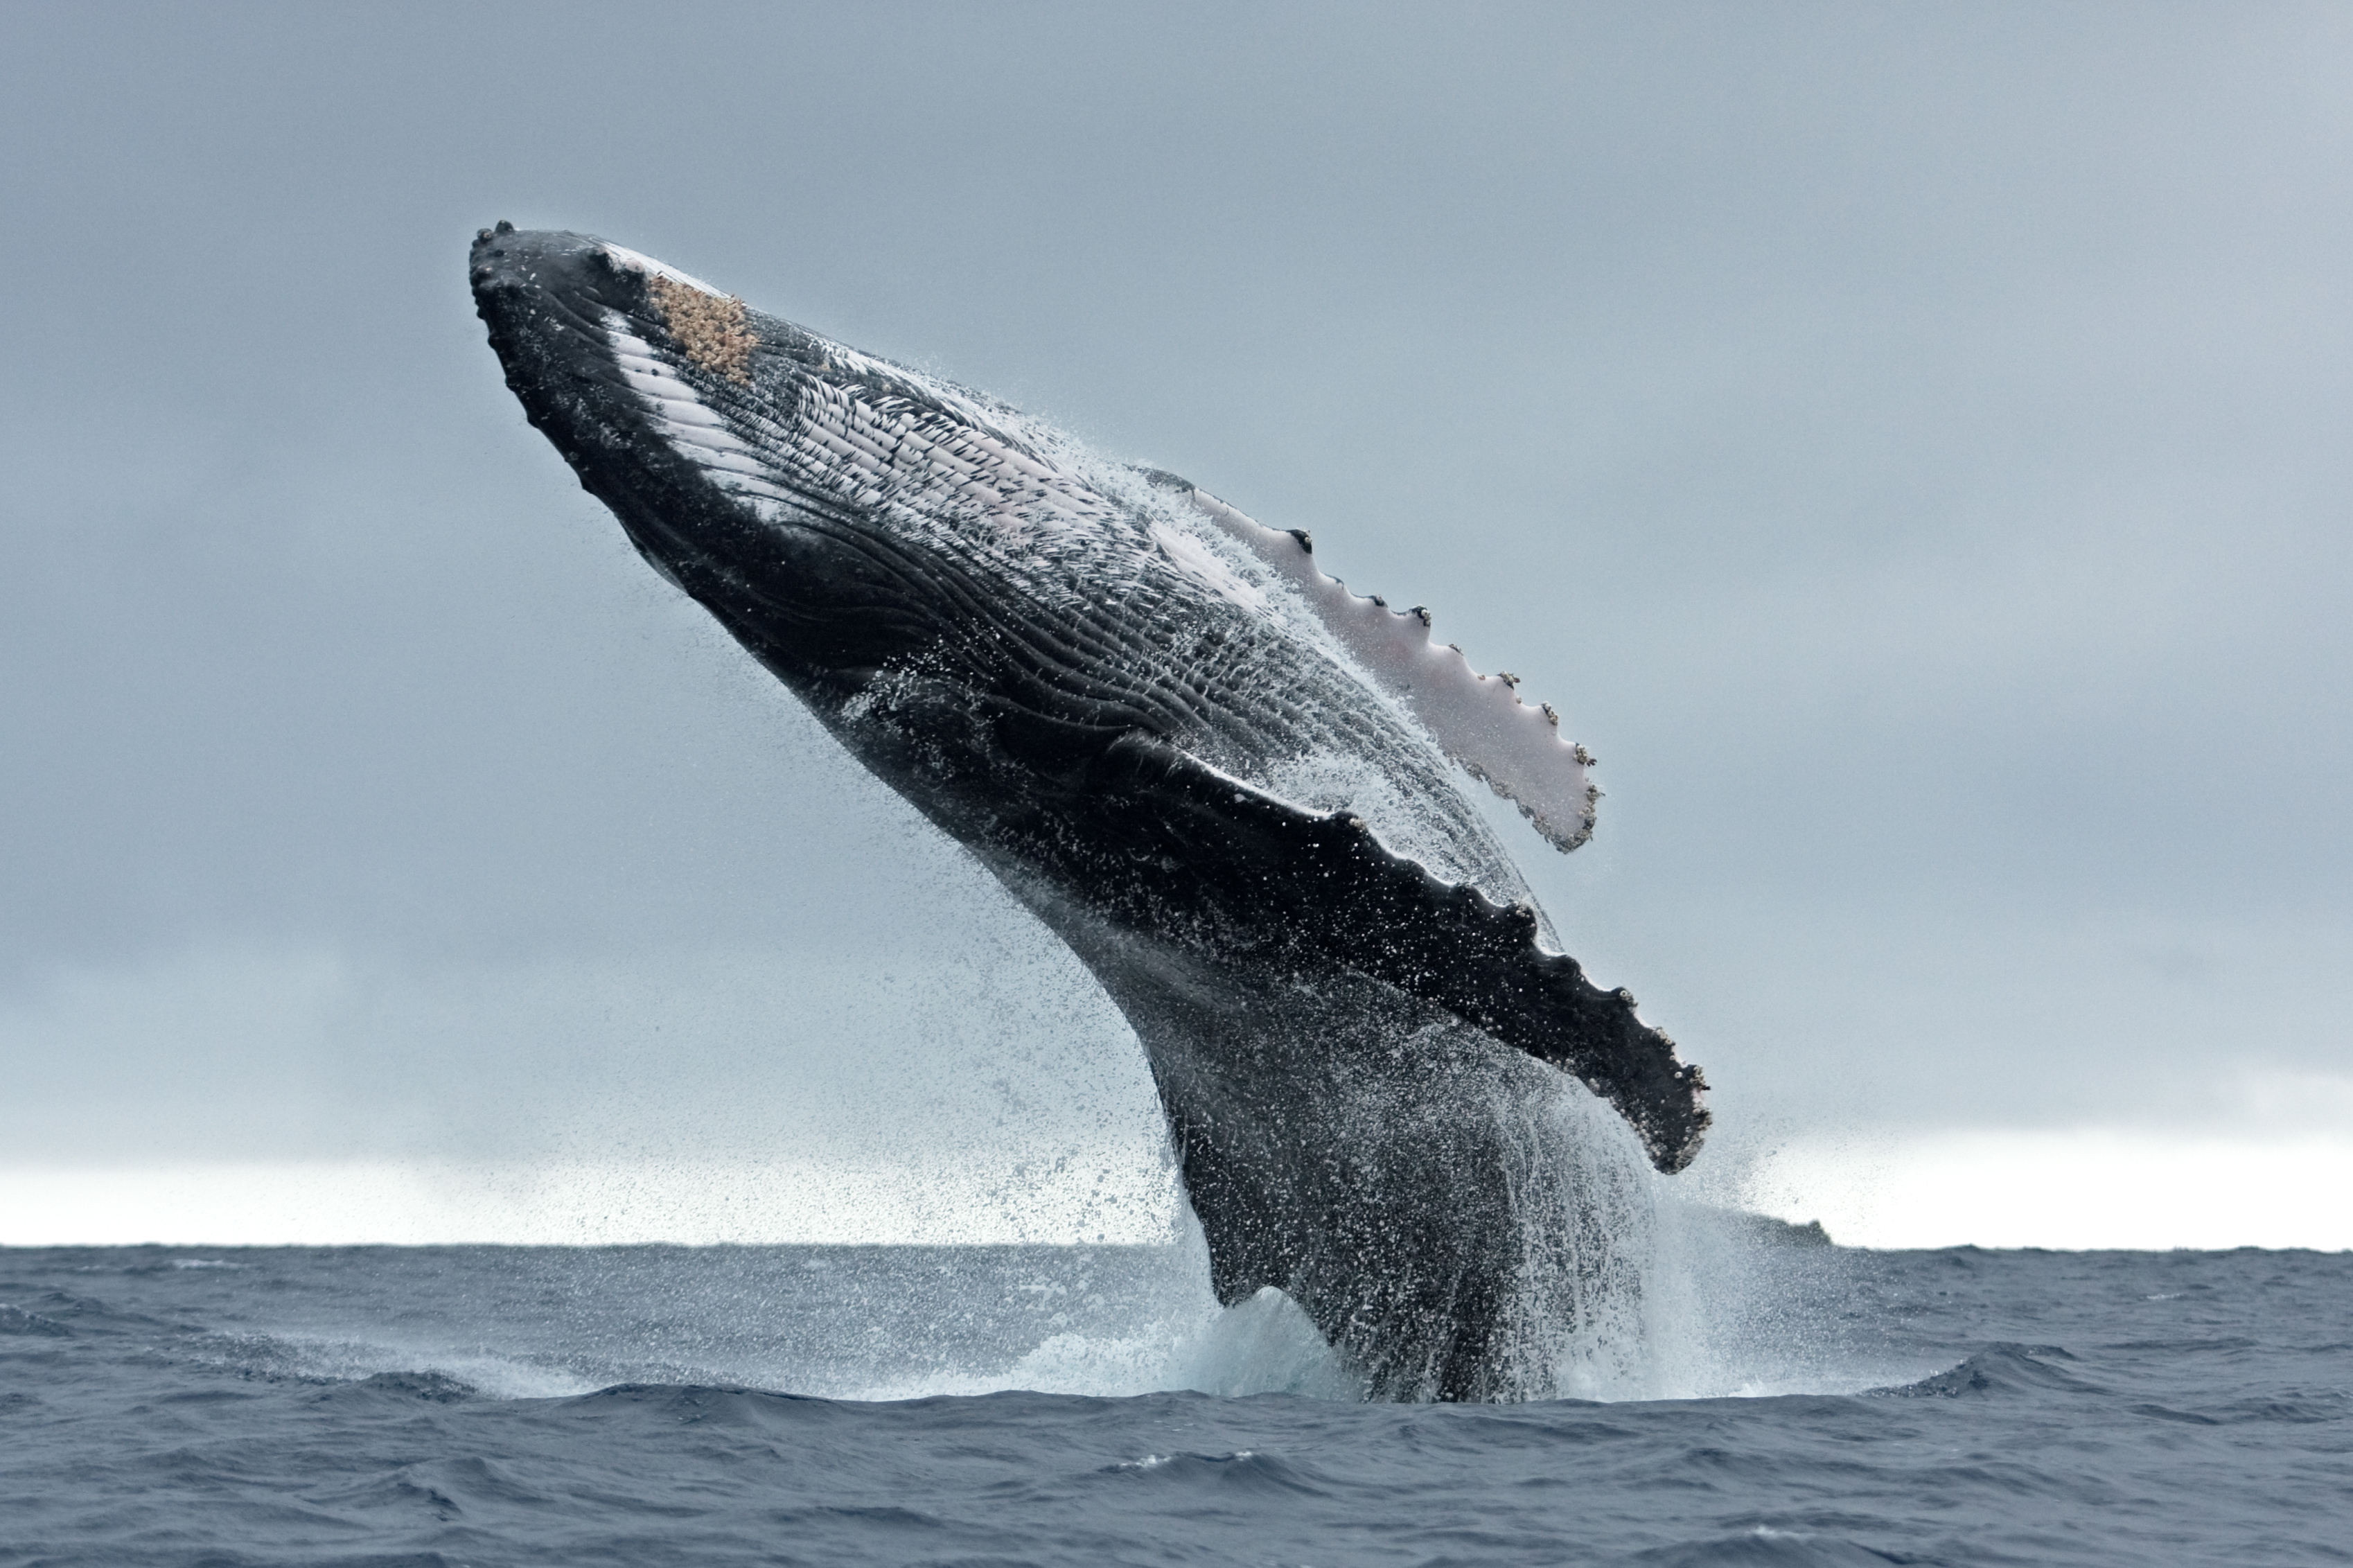 Brazil re-establishes conservation measures to protect whales from commercial hunting